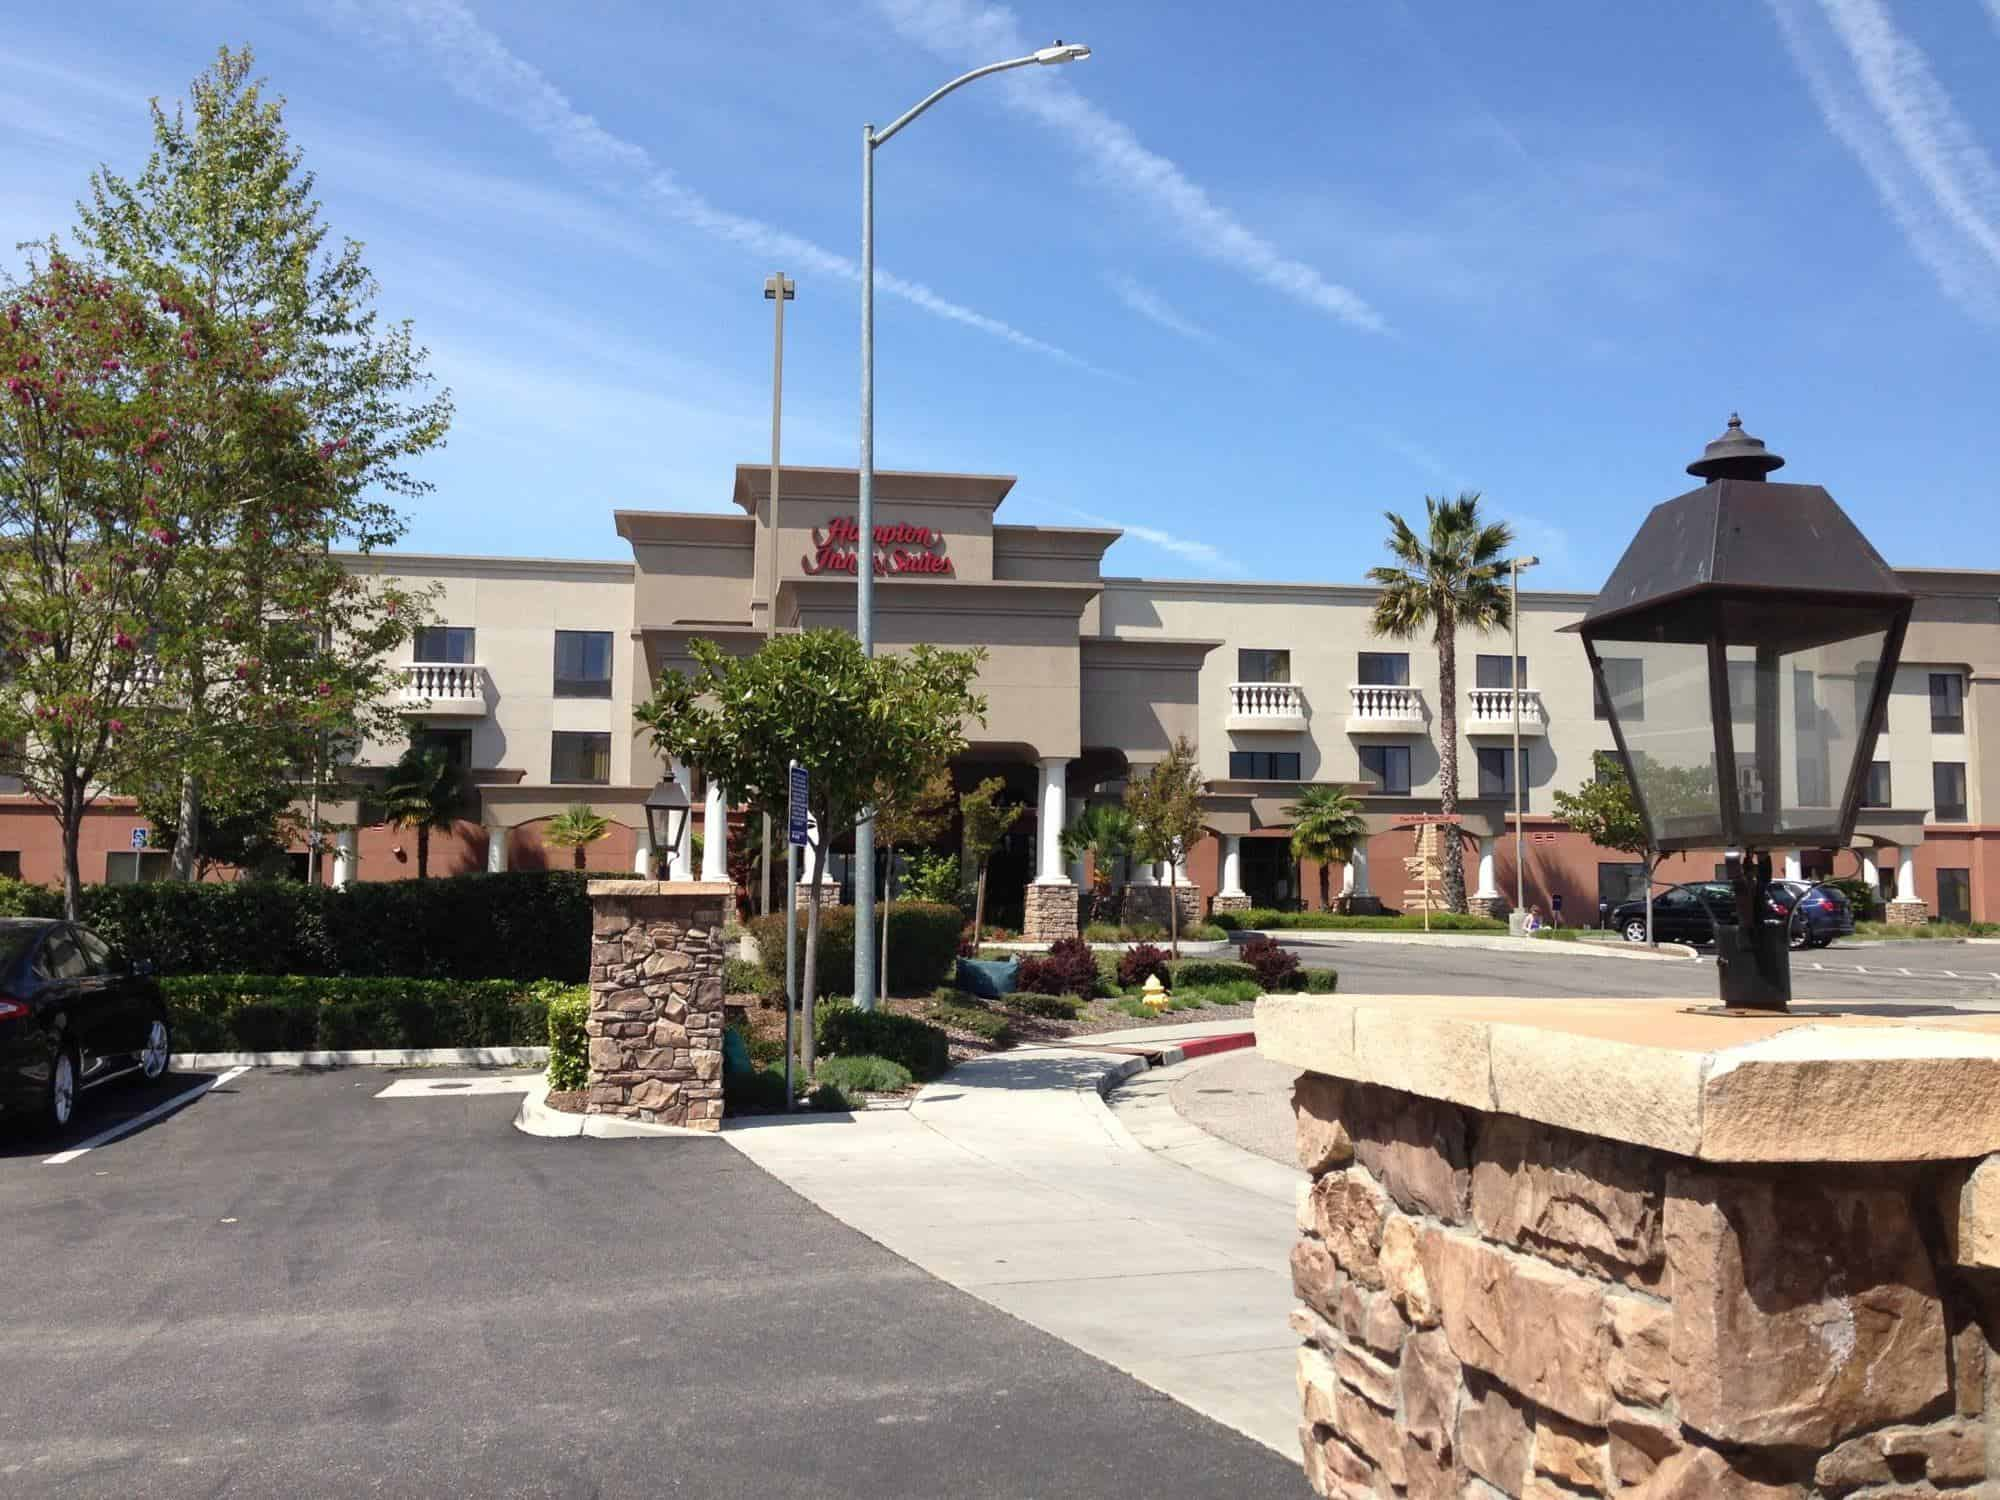 Paso Robles Hampton Inn – not Your Average Hilton Property